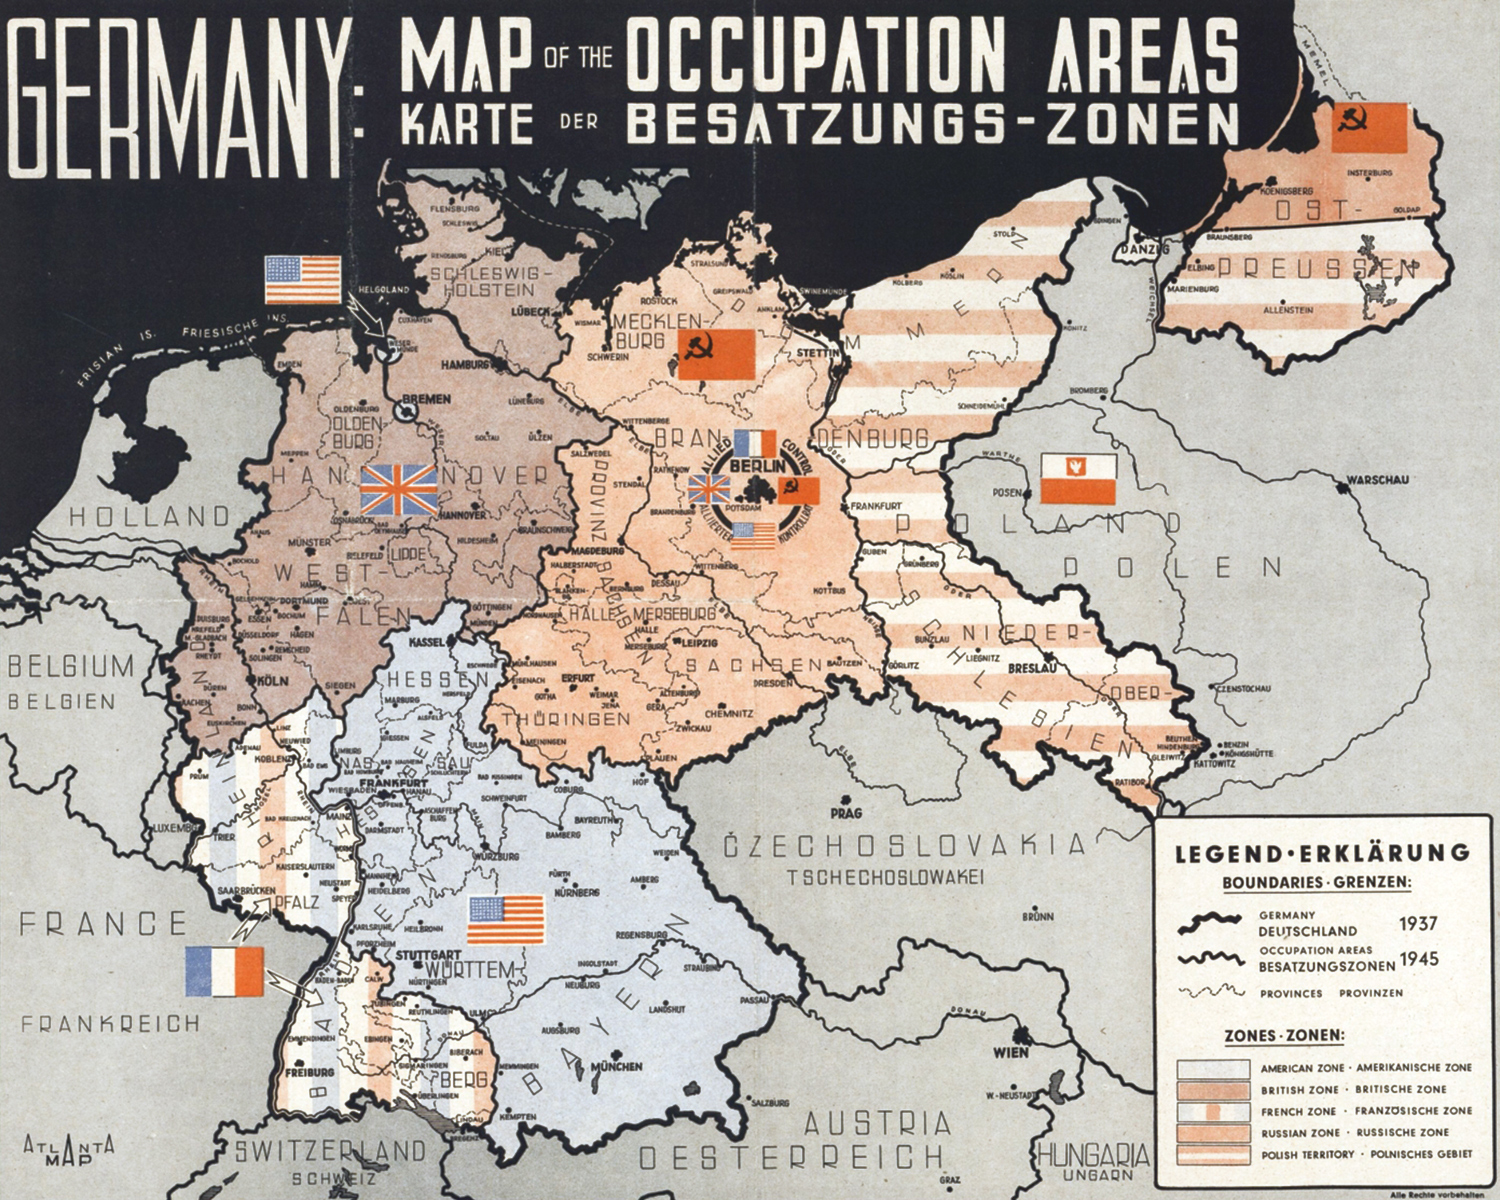 Germany occupation areas map